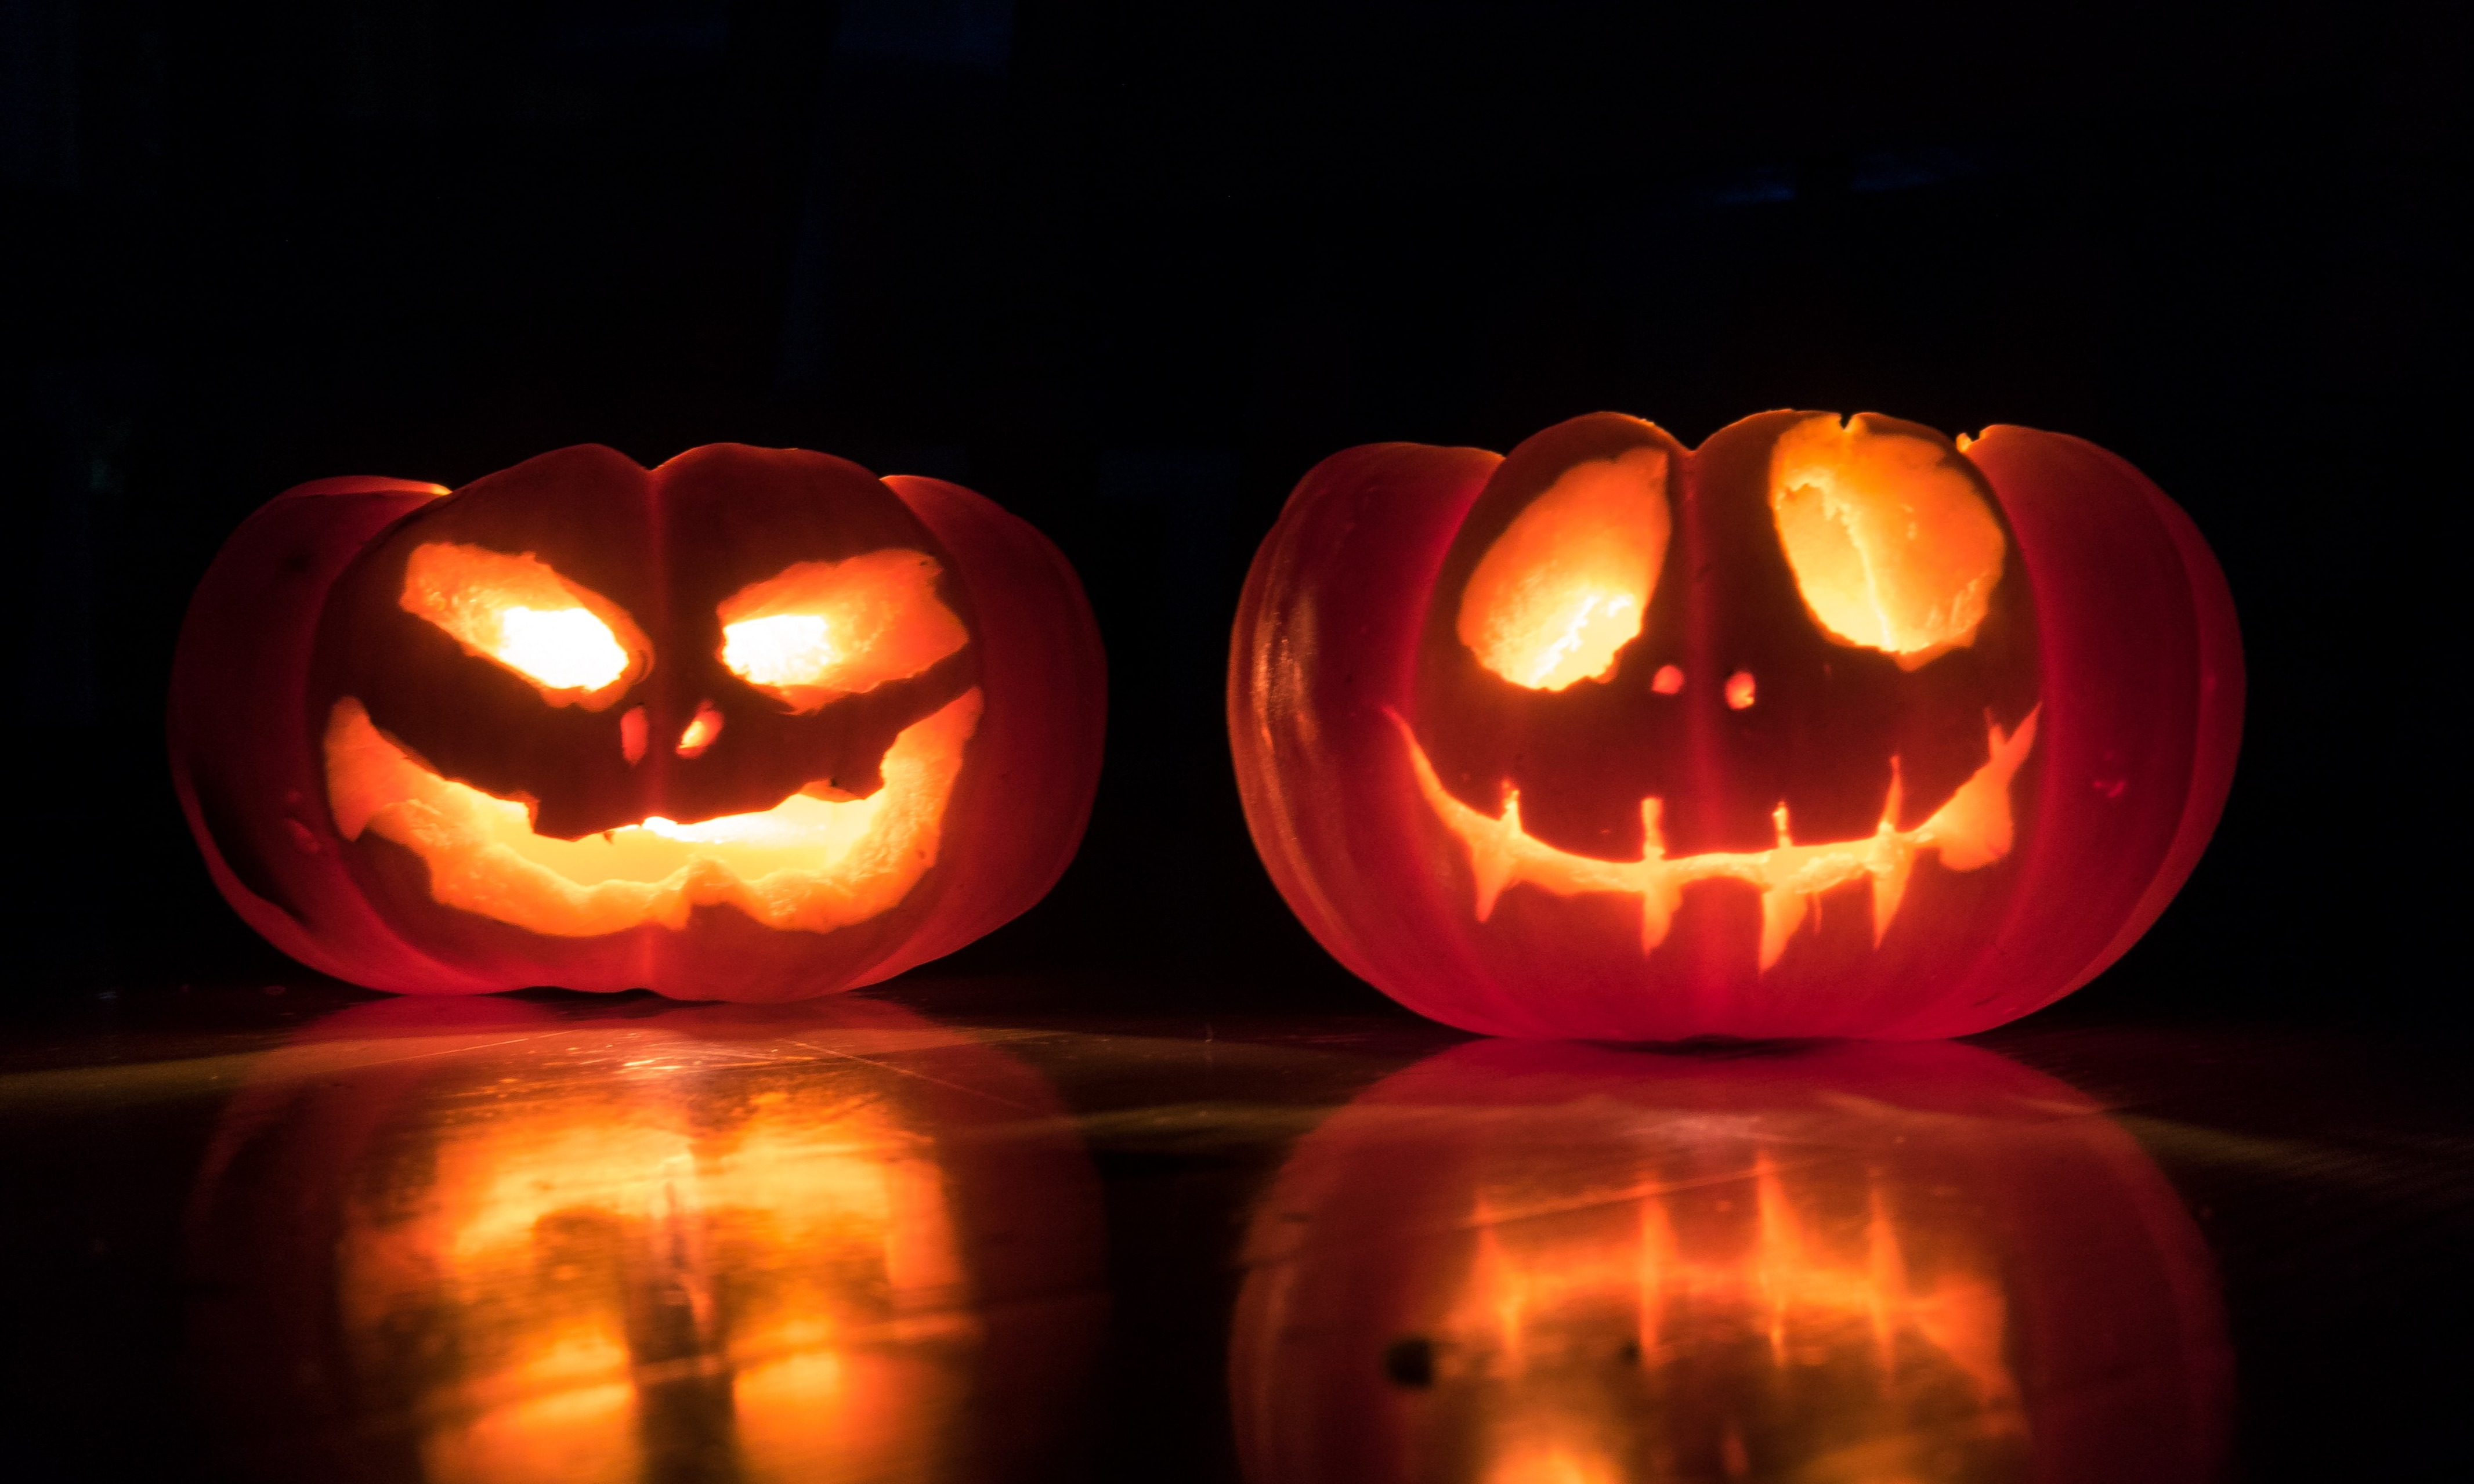 A Hallowe'en tale of CDs and soap stars   story.one